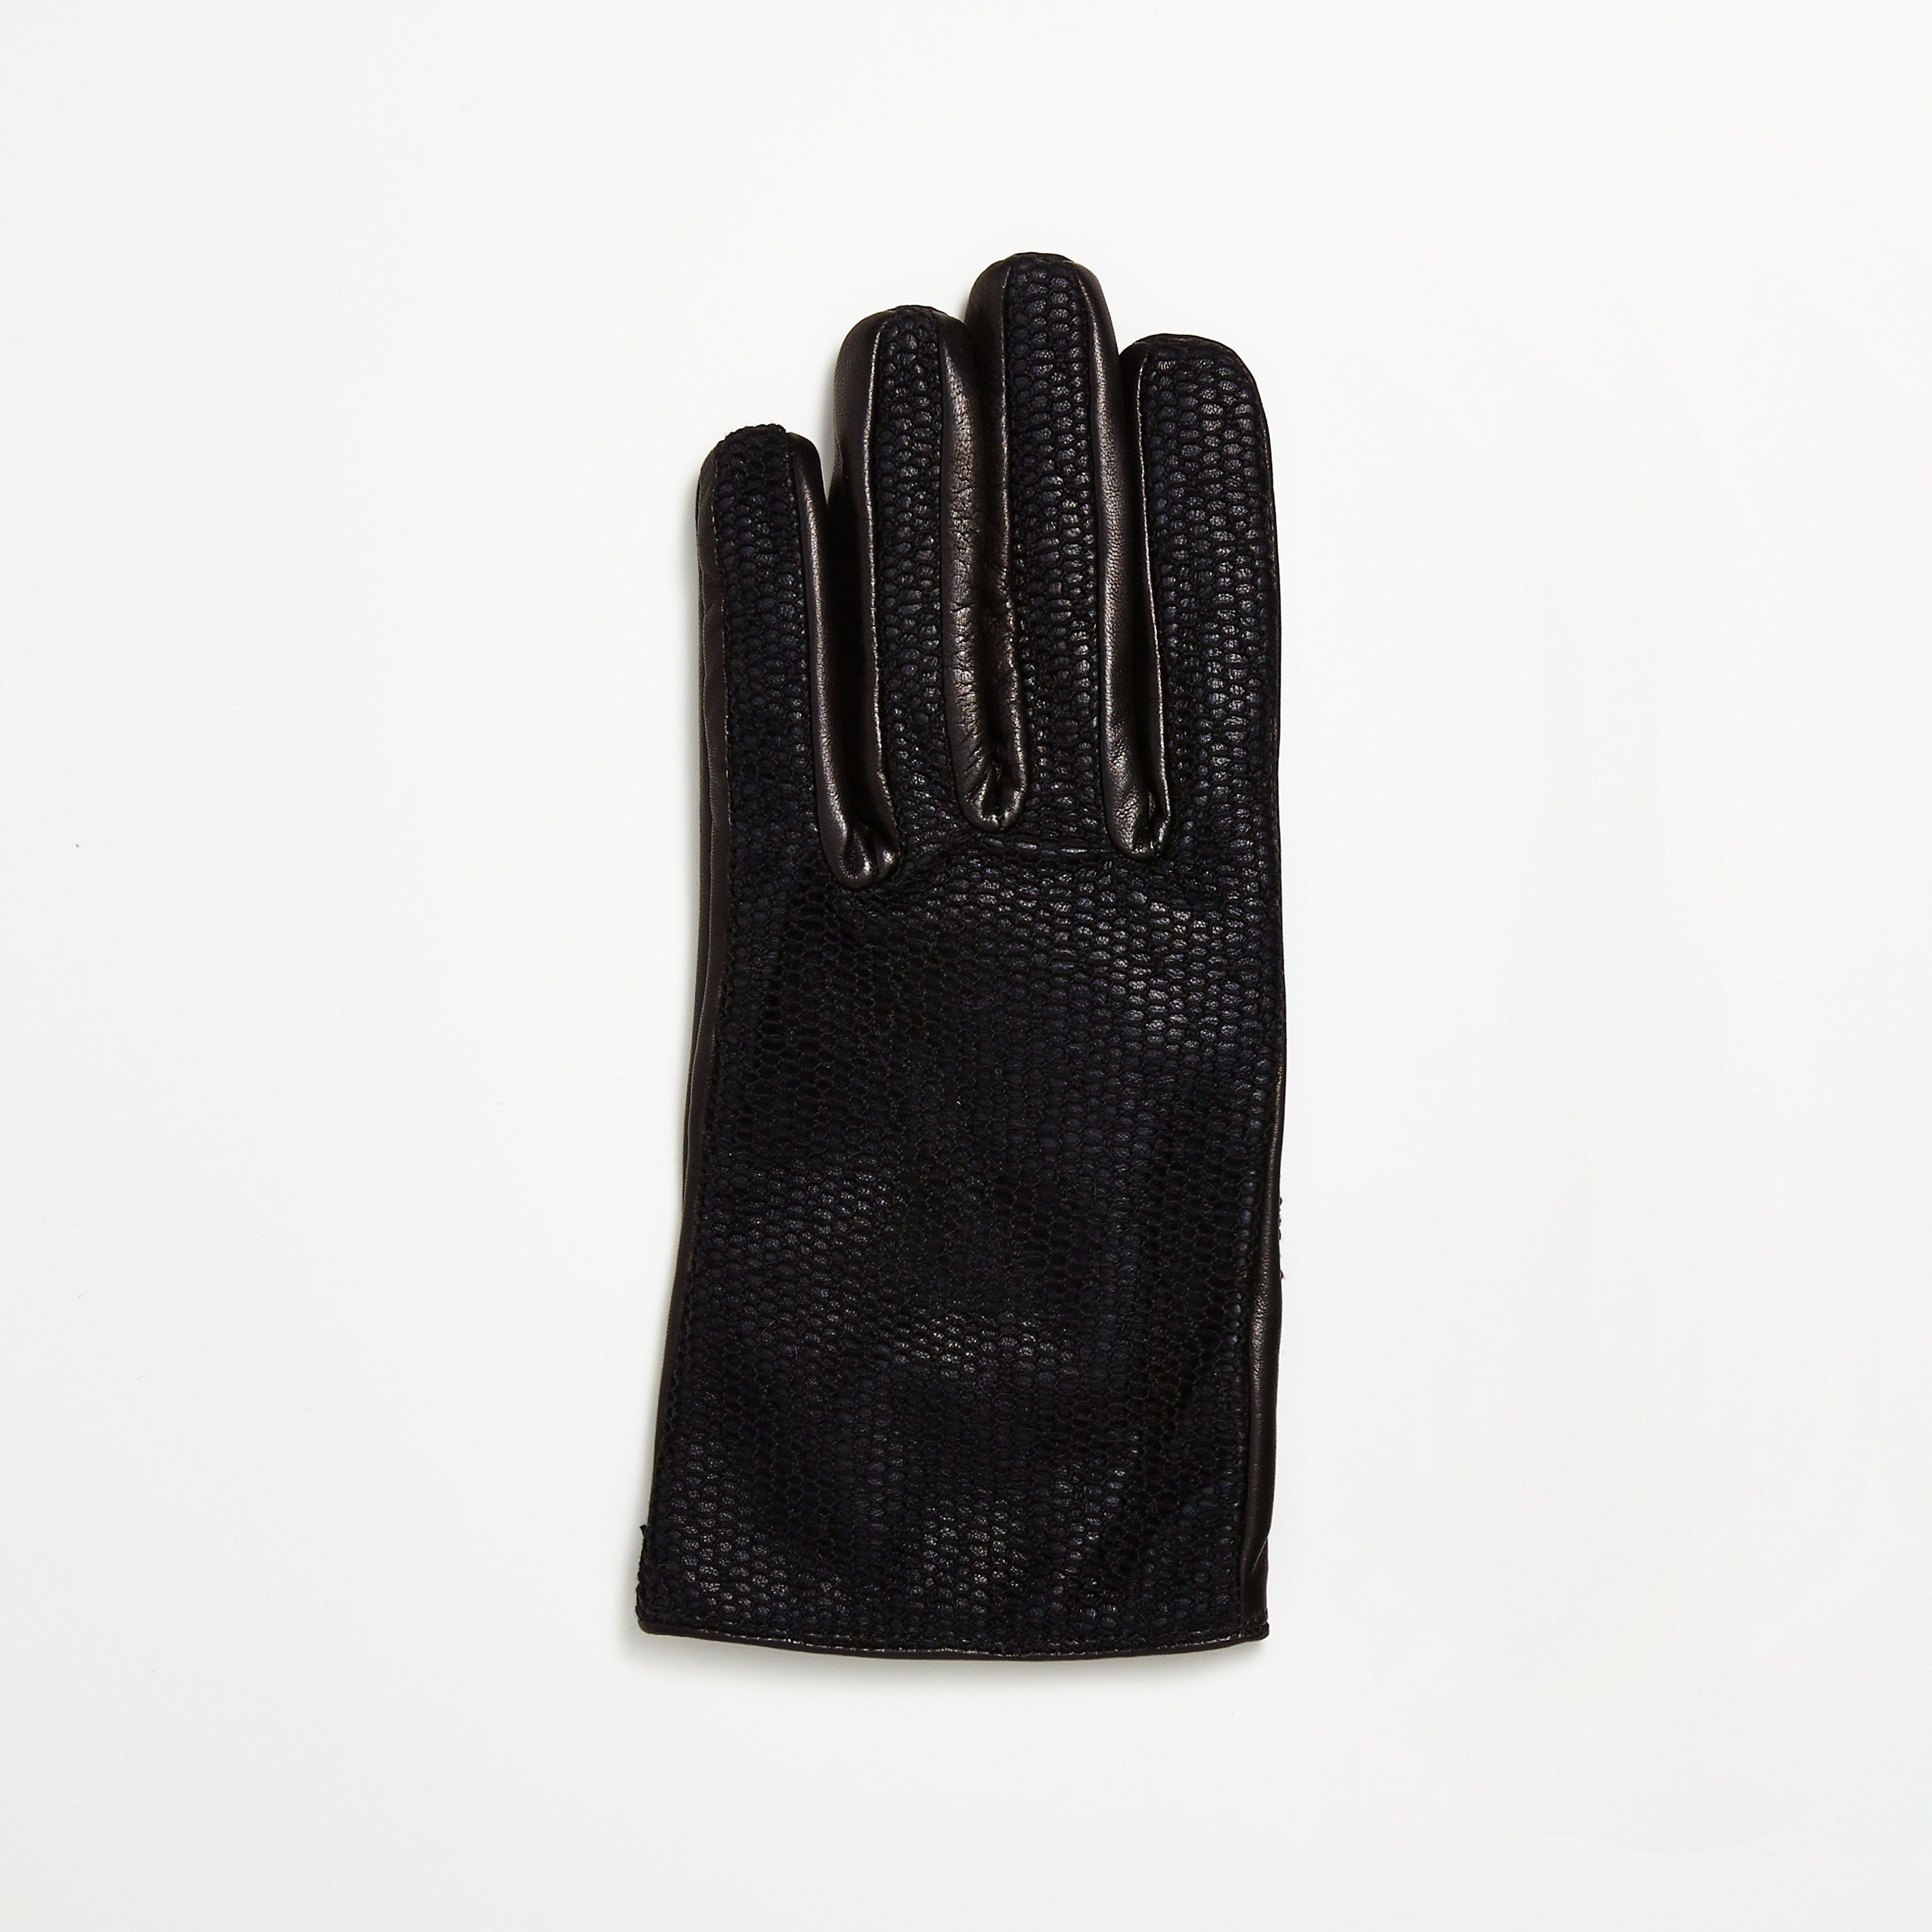 Leather Gloves with Mesh Lace Overlay